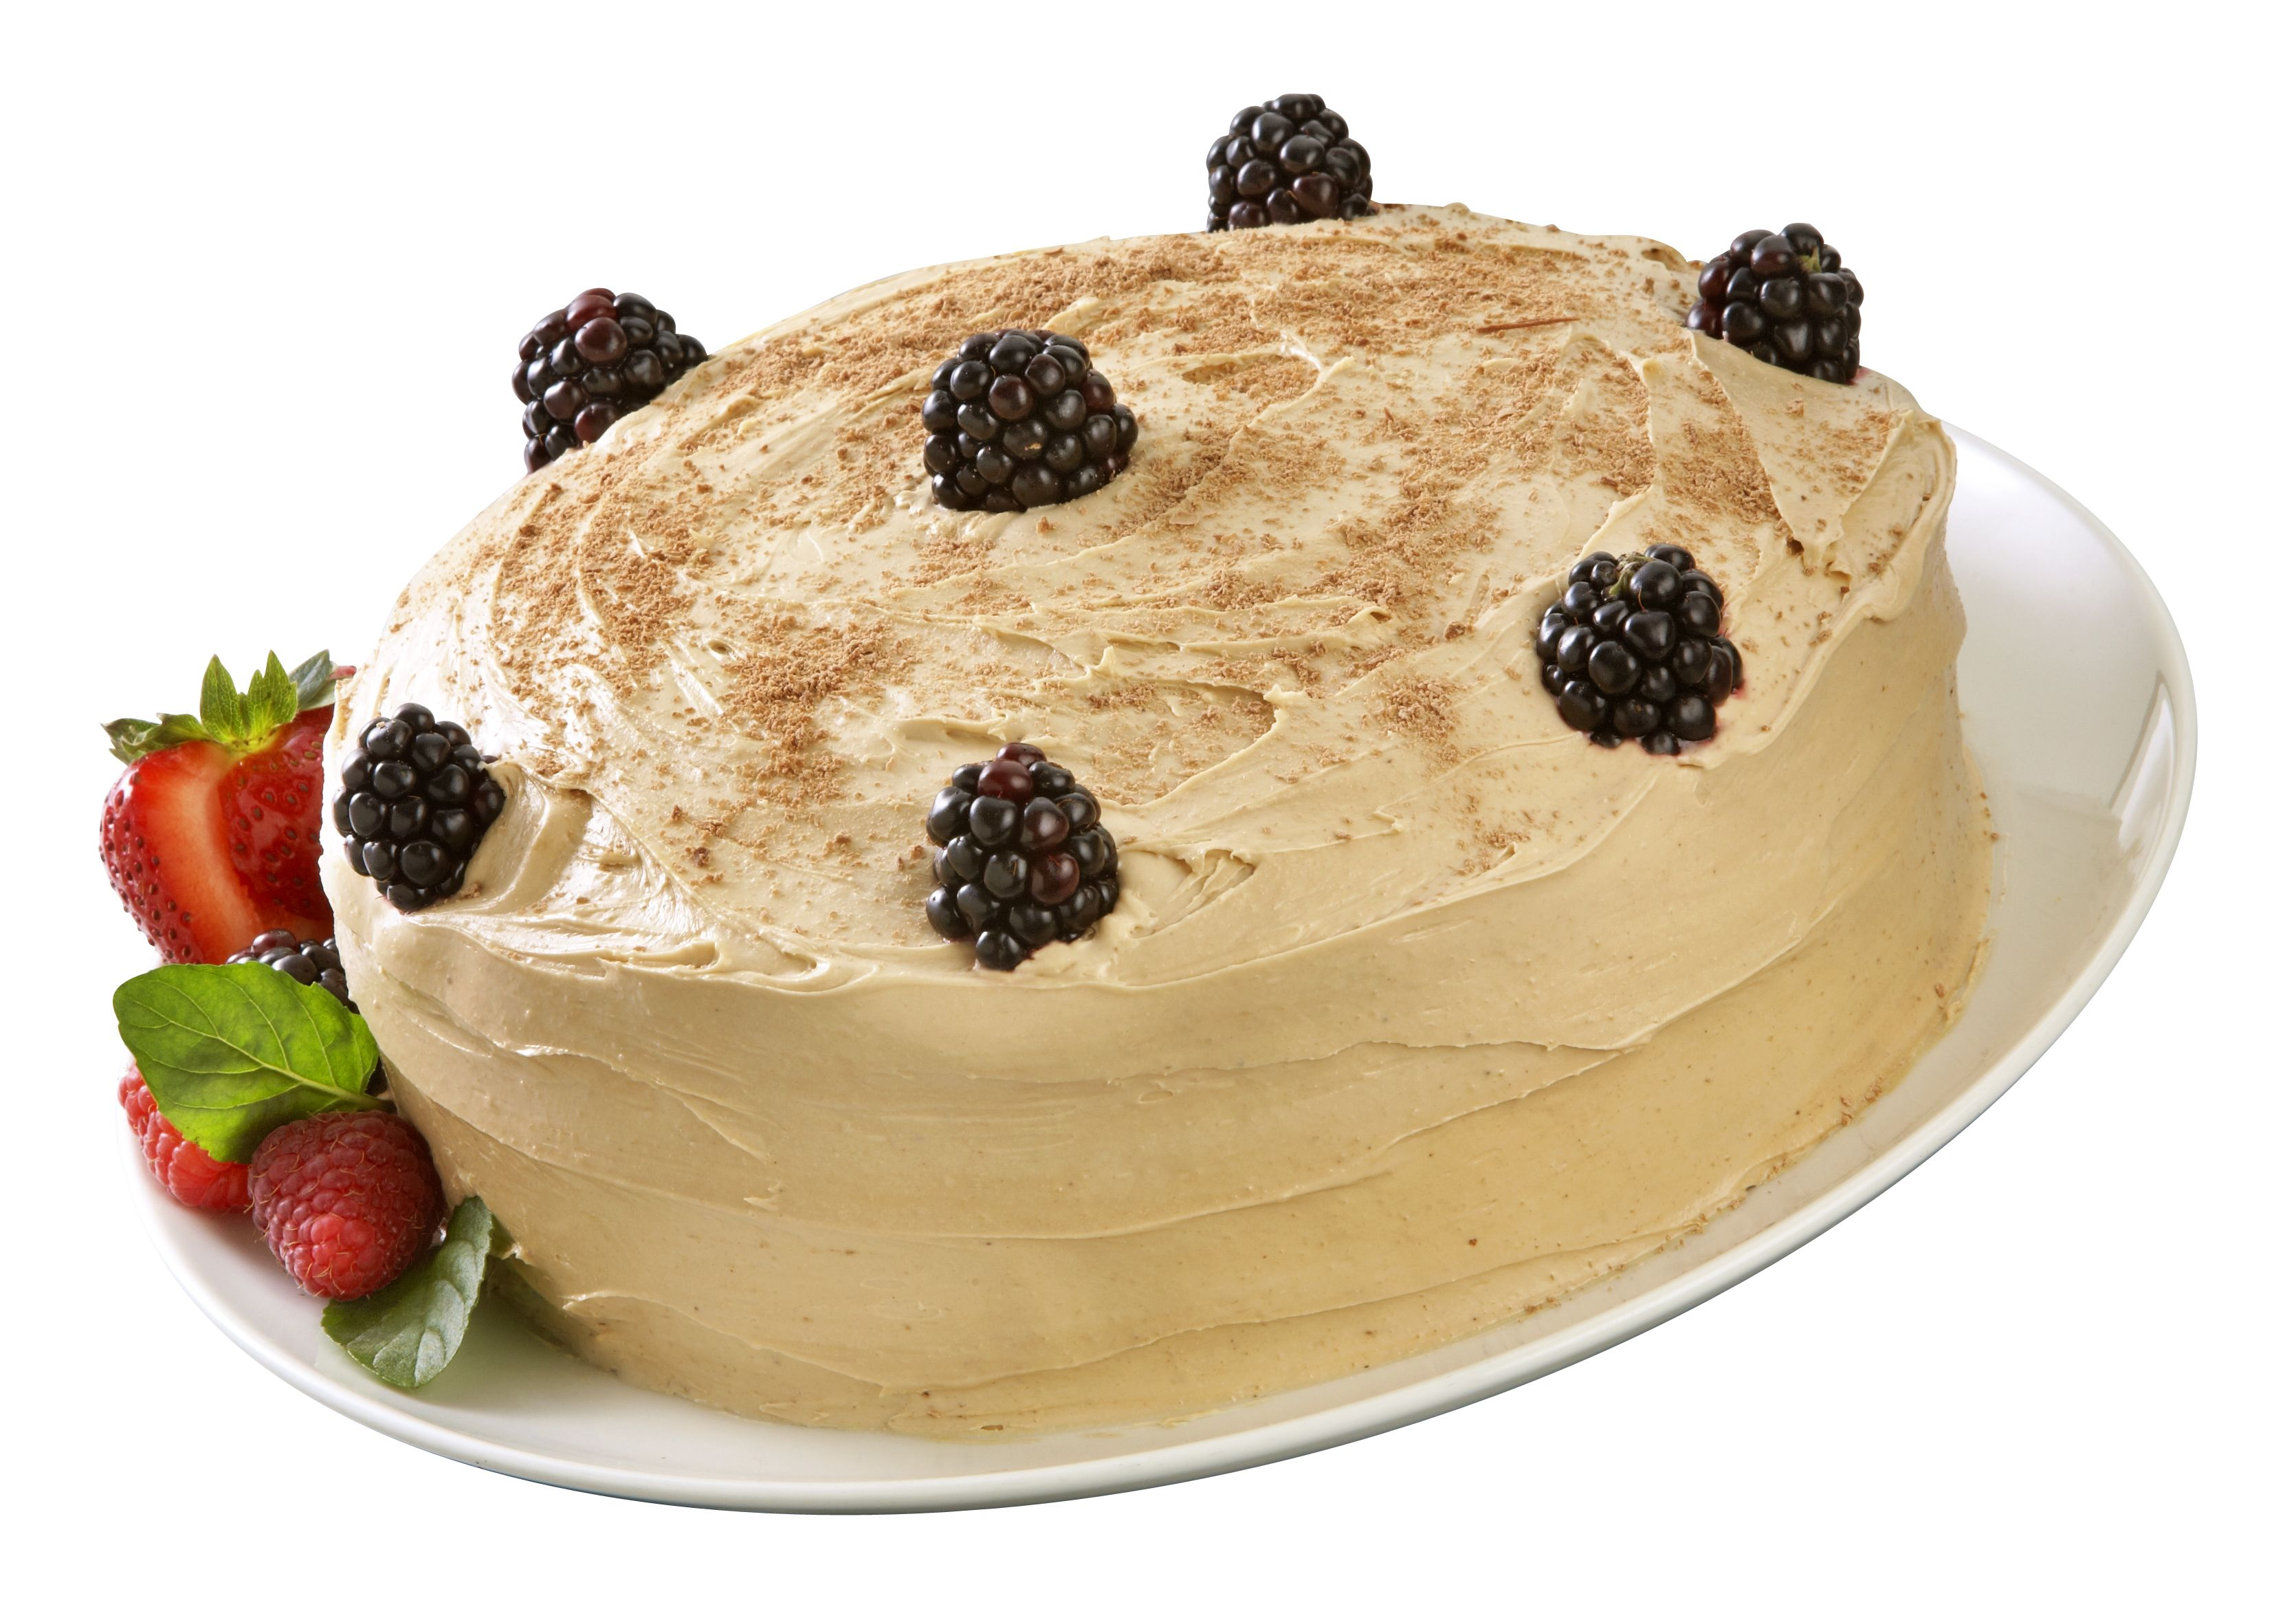 Pastel Tres Leches Capuchino Recipe Cake